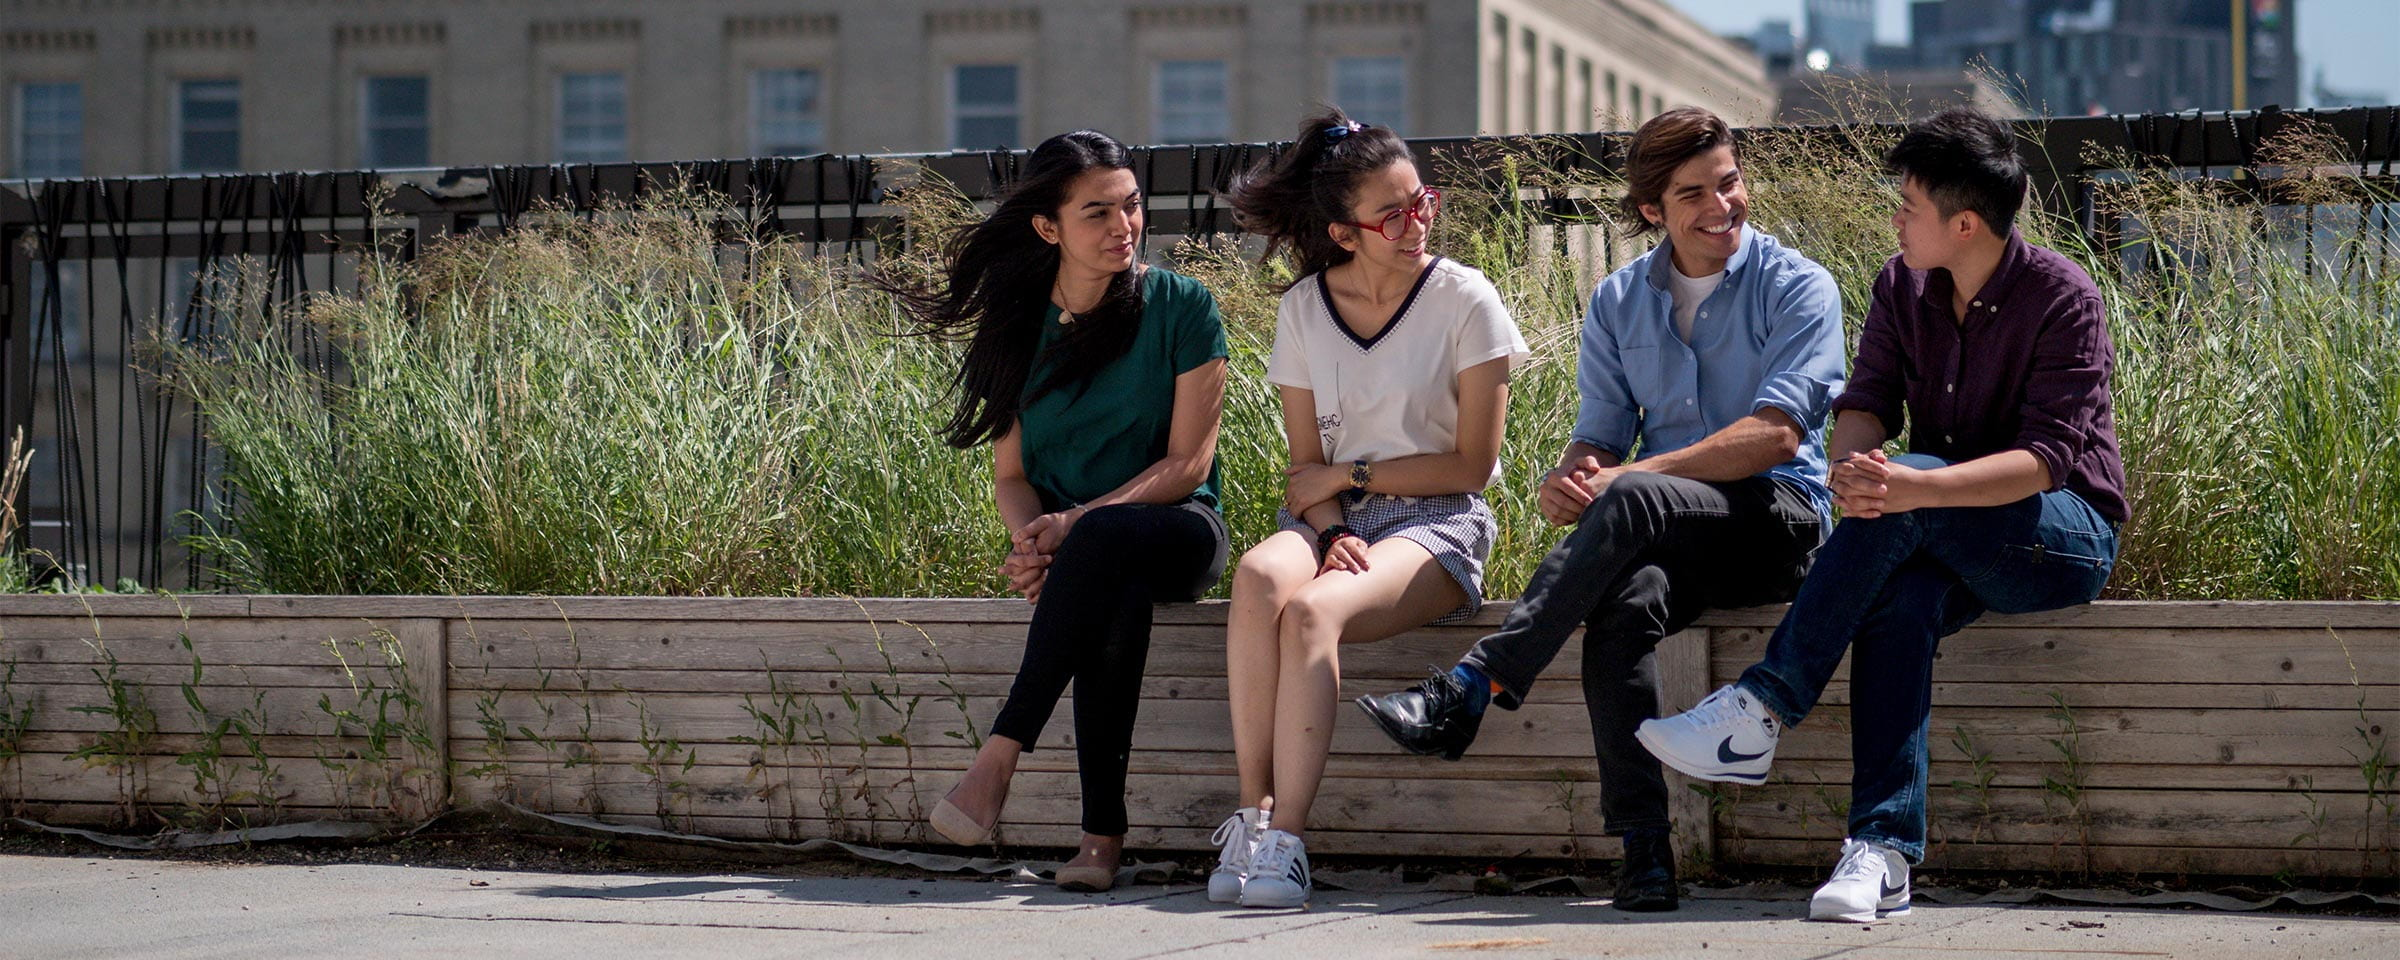 Four students conversing outside